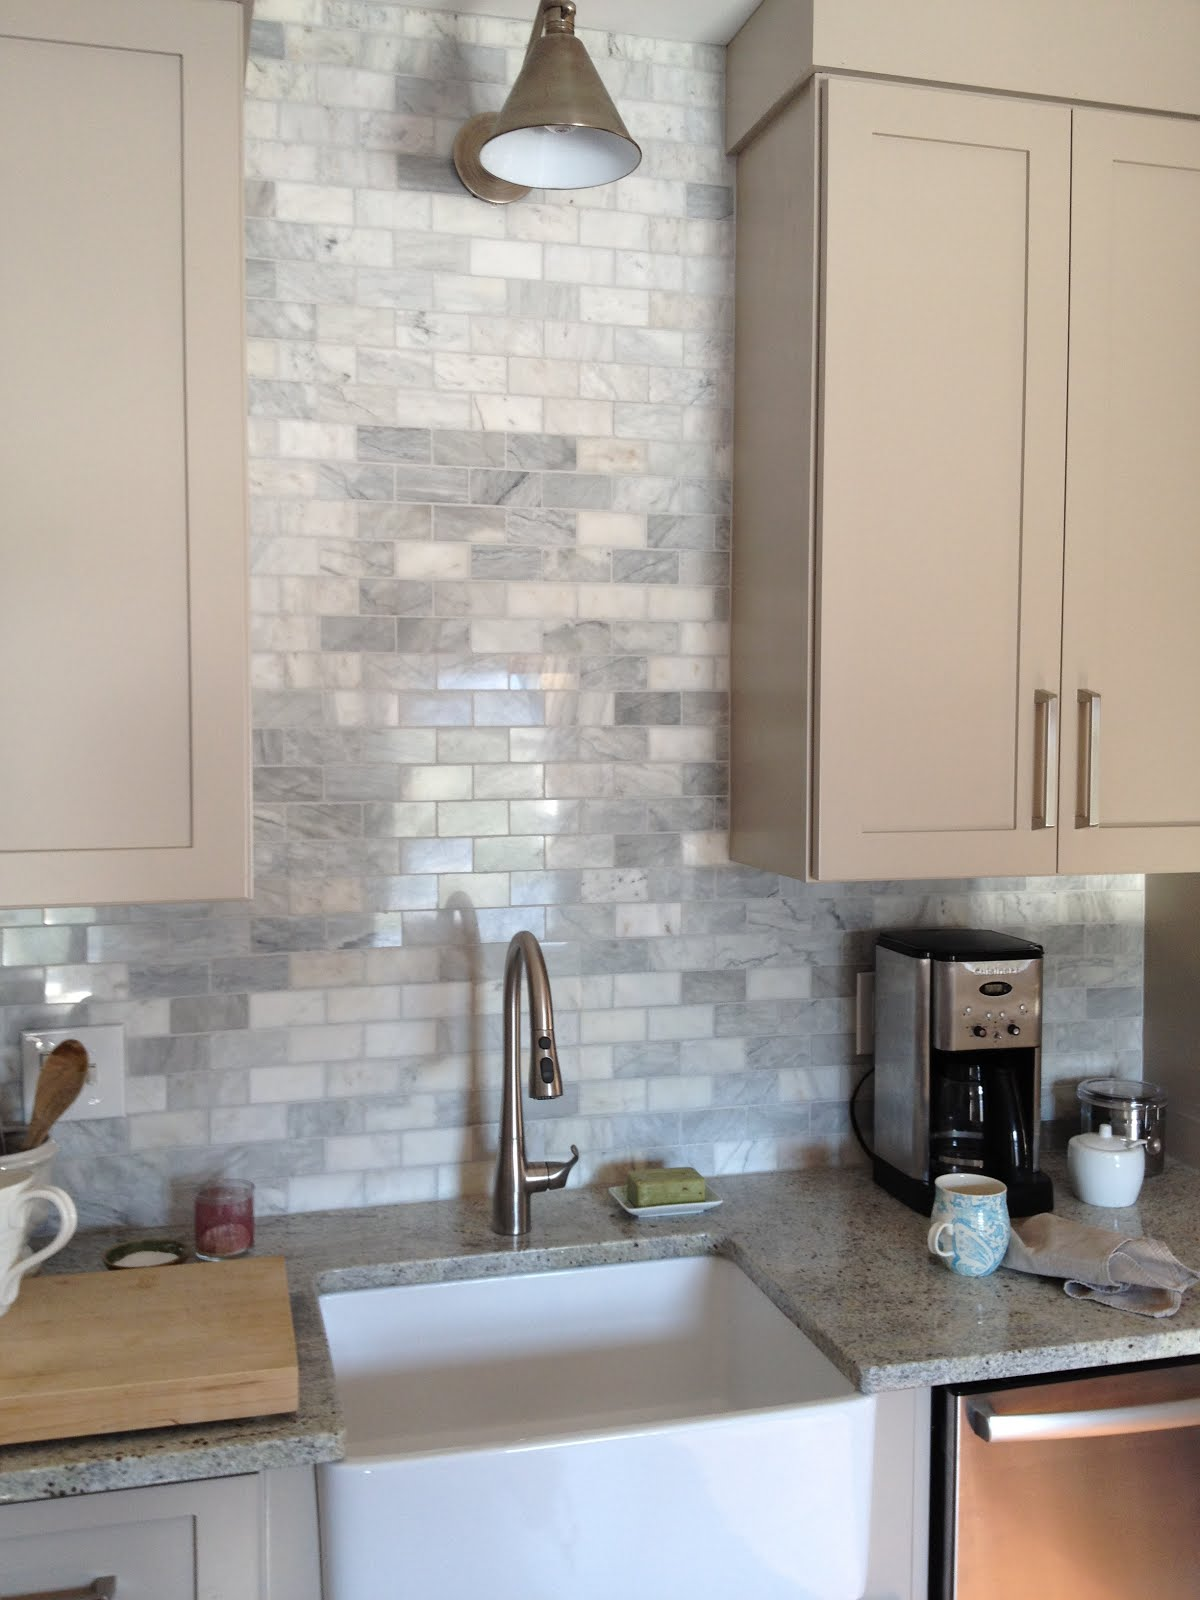 Loft & Cottage: The Marble Backsplash